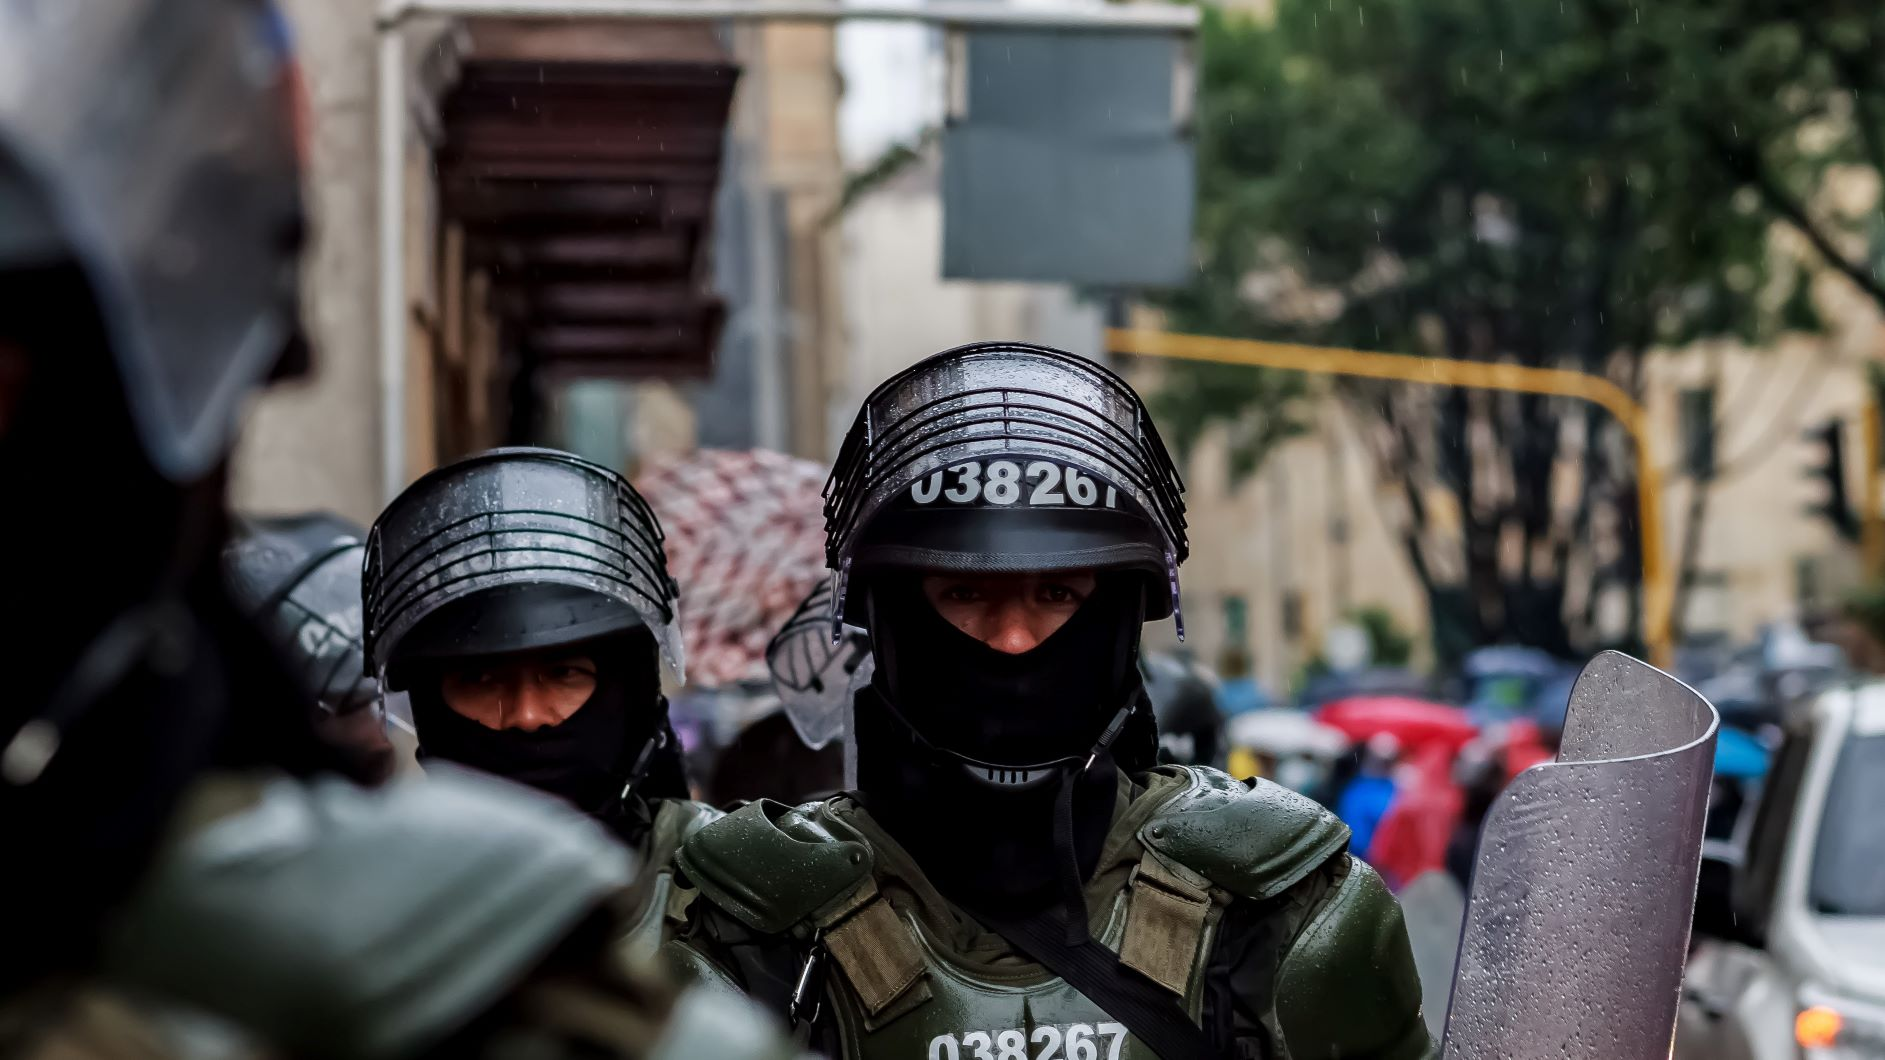 Colombia: Violent protest hotspots and risks